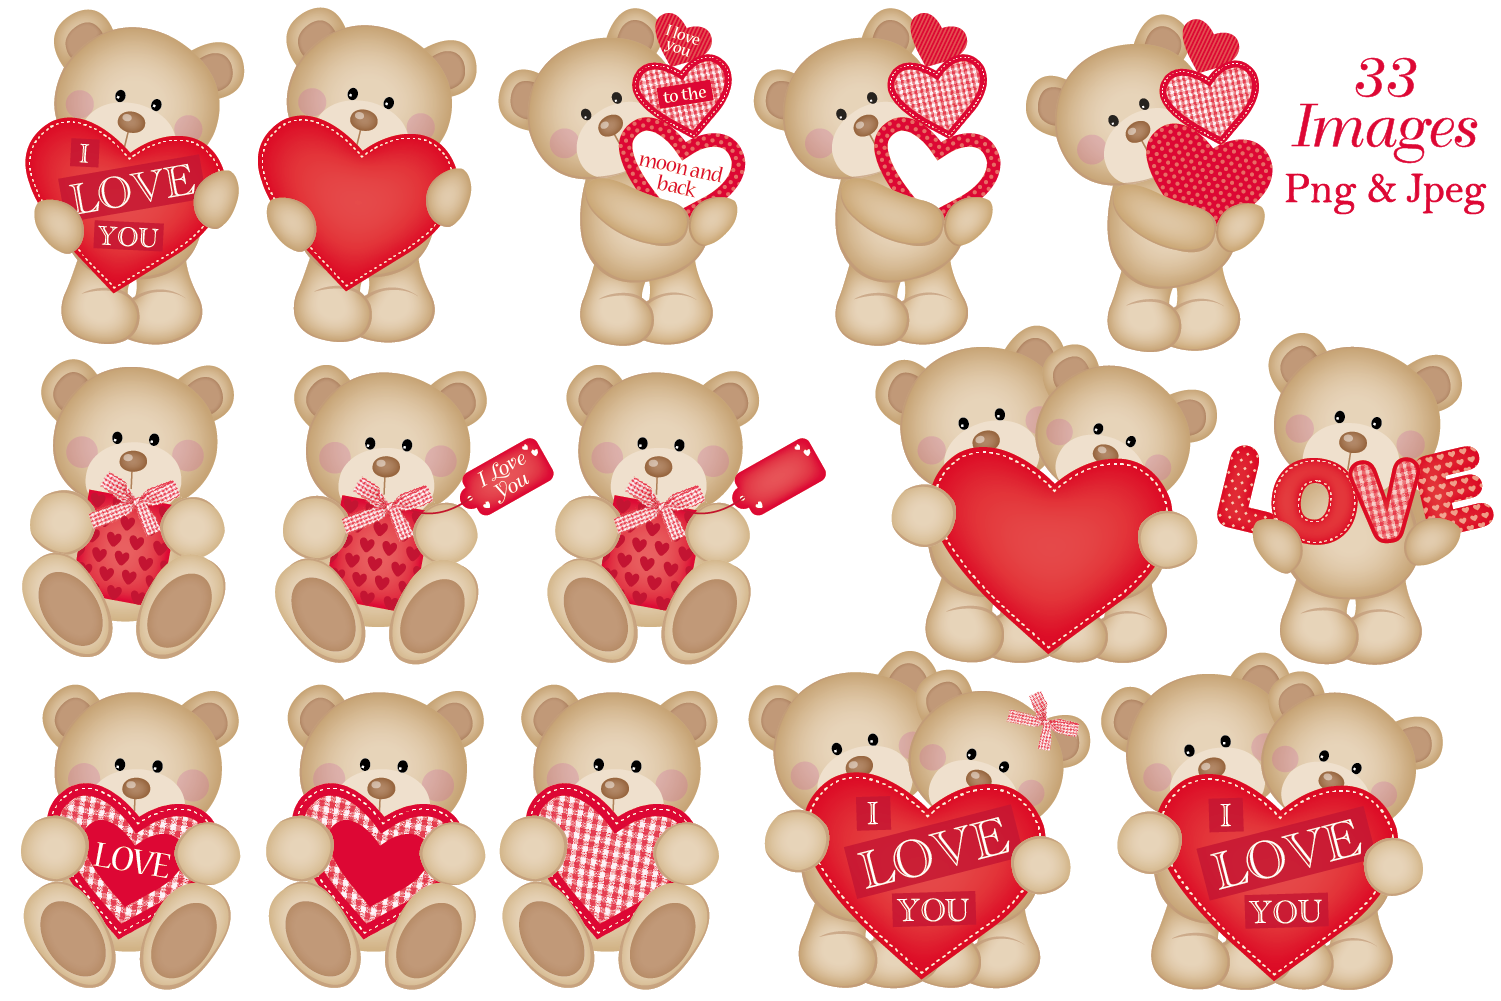 Valentine clipart, Valentine bear graphics & illustrations example image 2